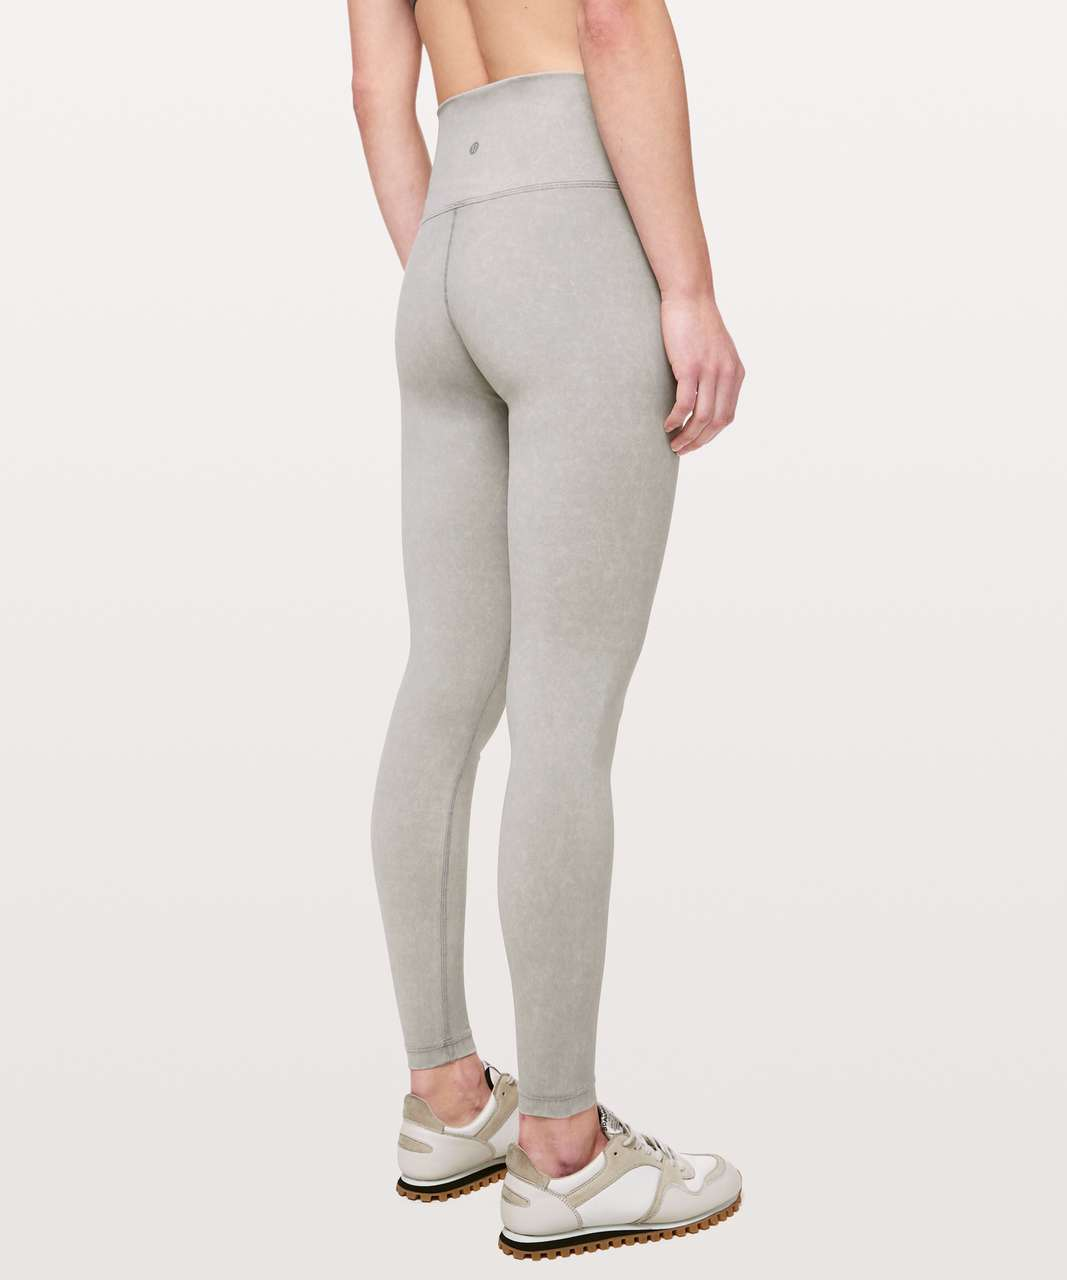 "Lululemon Wunder Under High-Rise Tight *Snow Washed 28"" - Washed French Clay"